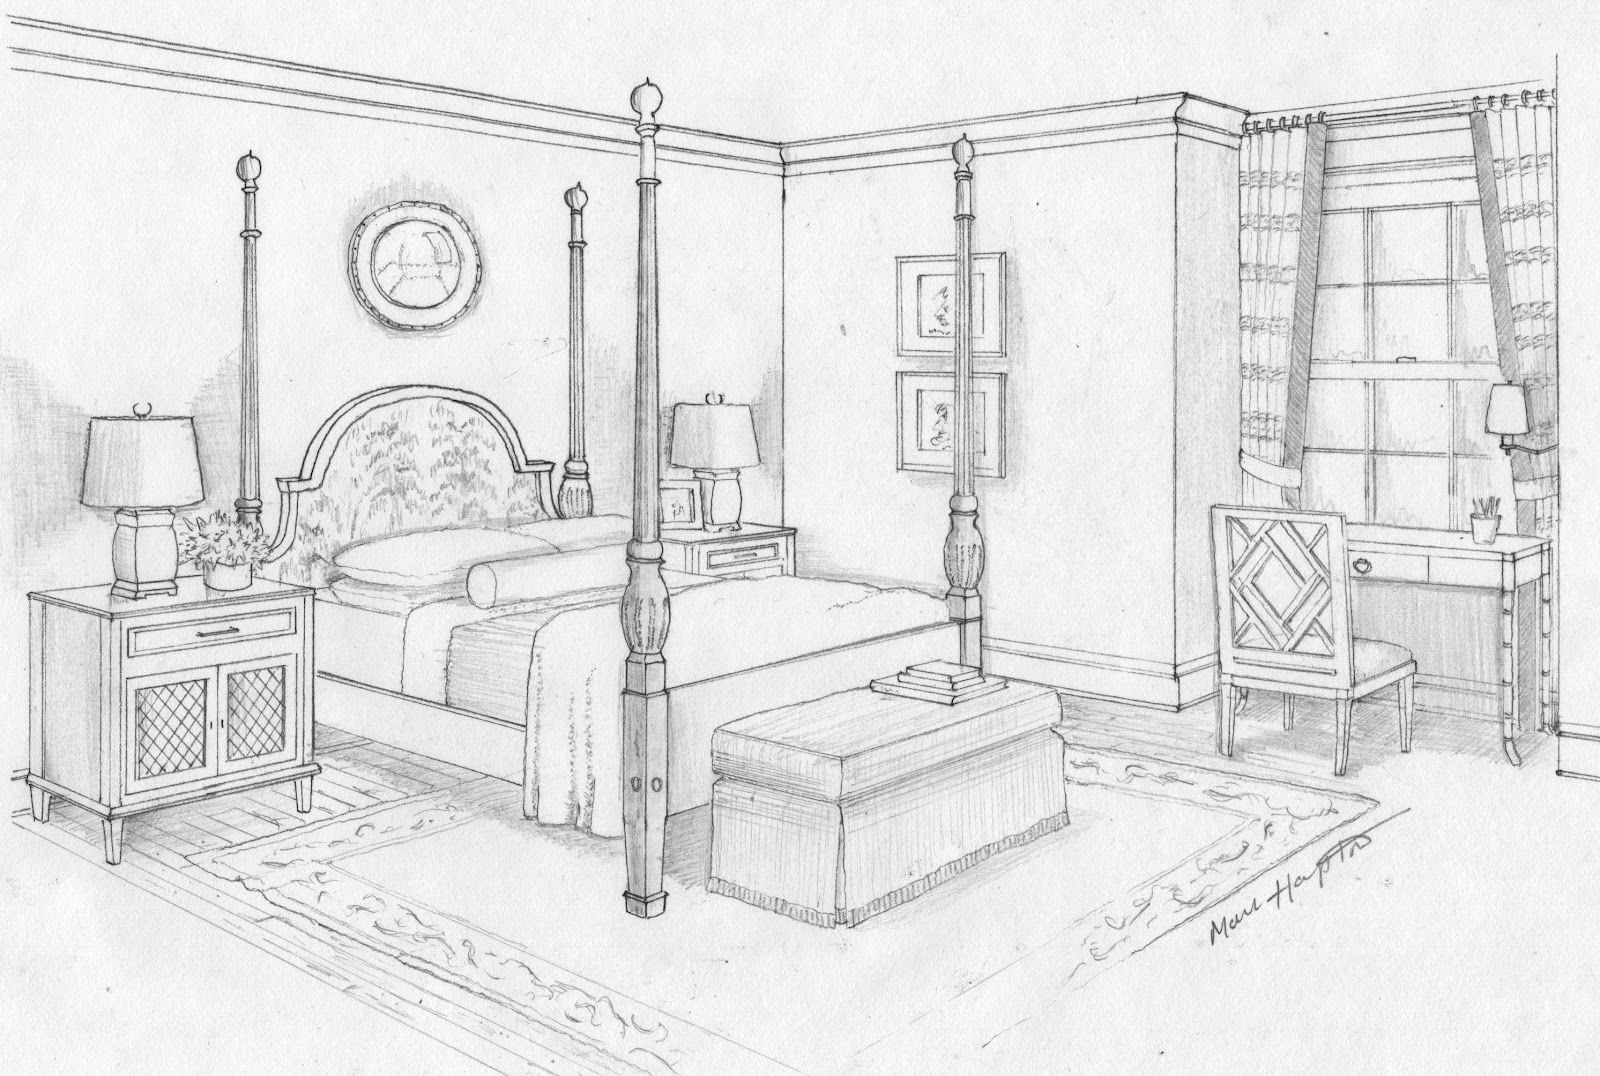 Dream bedroom sketch bedroom ideas pictures art for Interior design in a box